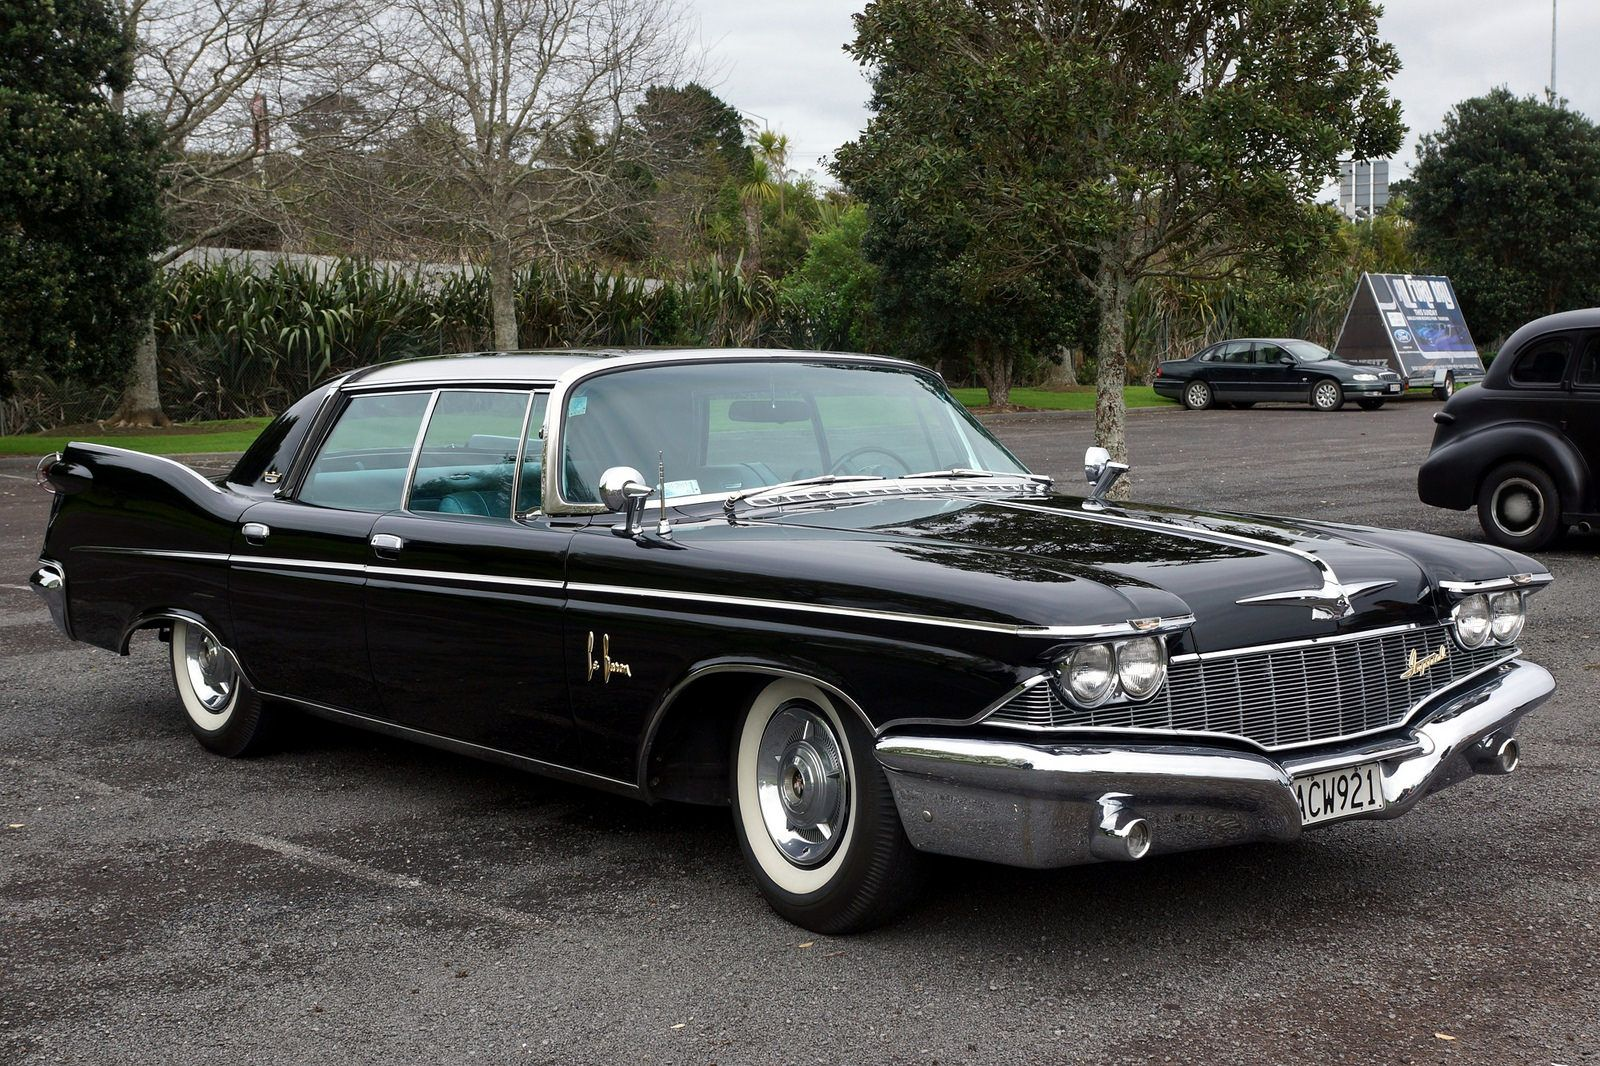 1960 Imperial Lebaron Southampton Chrysler Cars Super Luxury Cars Old Classic Cars